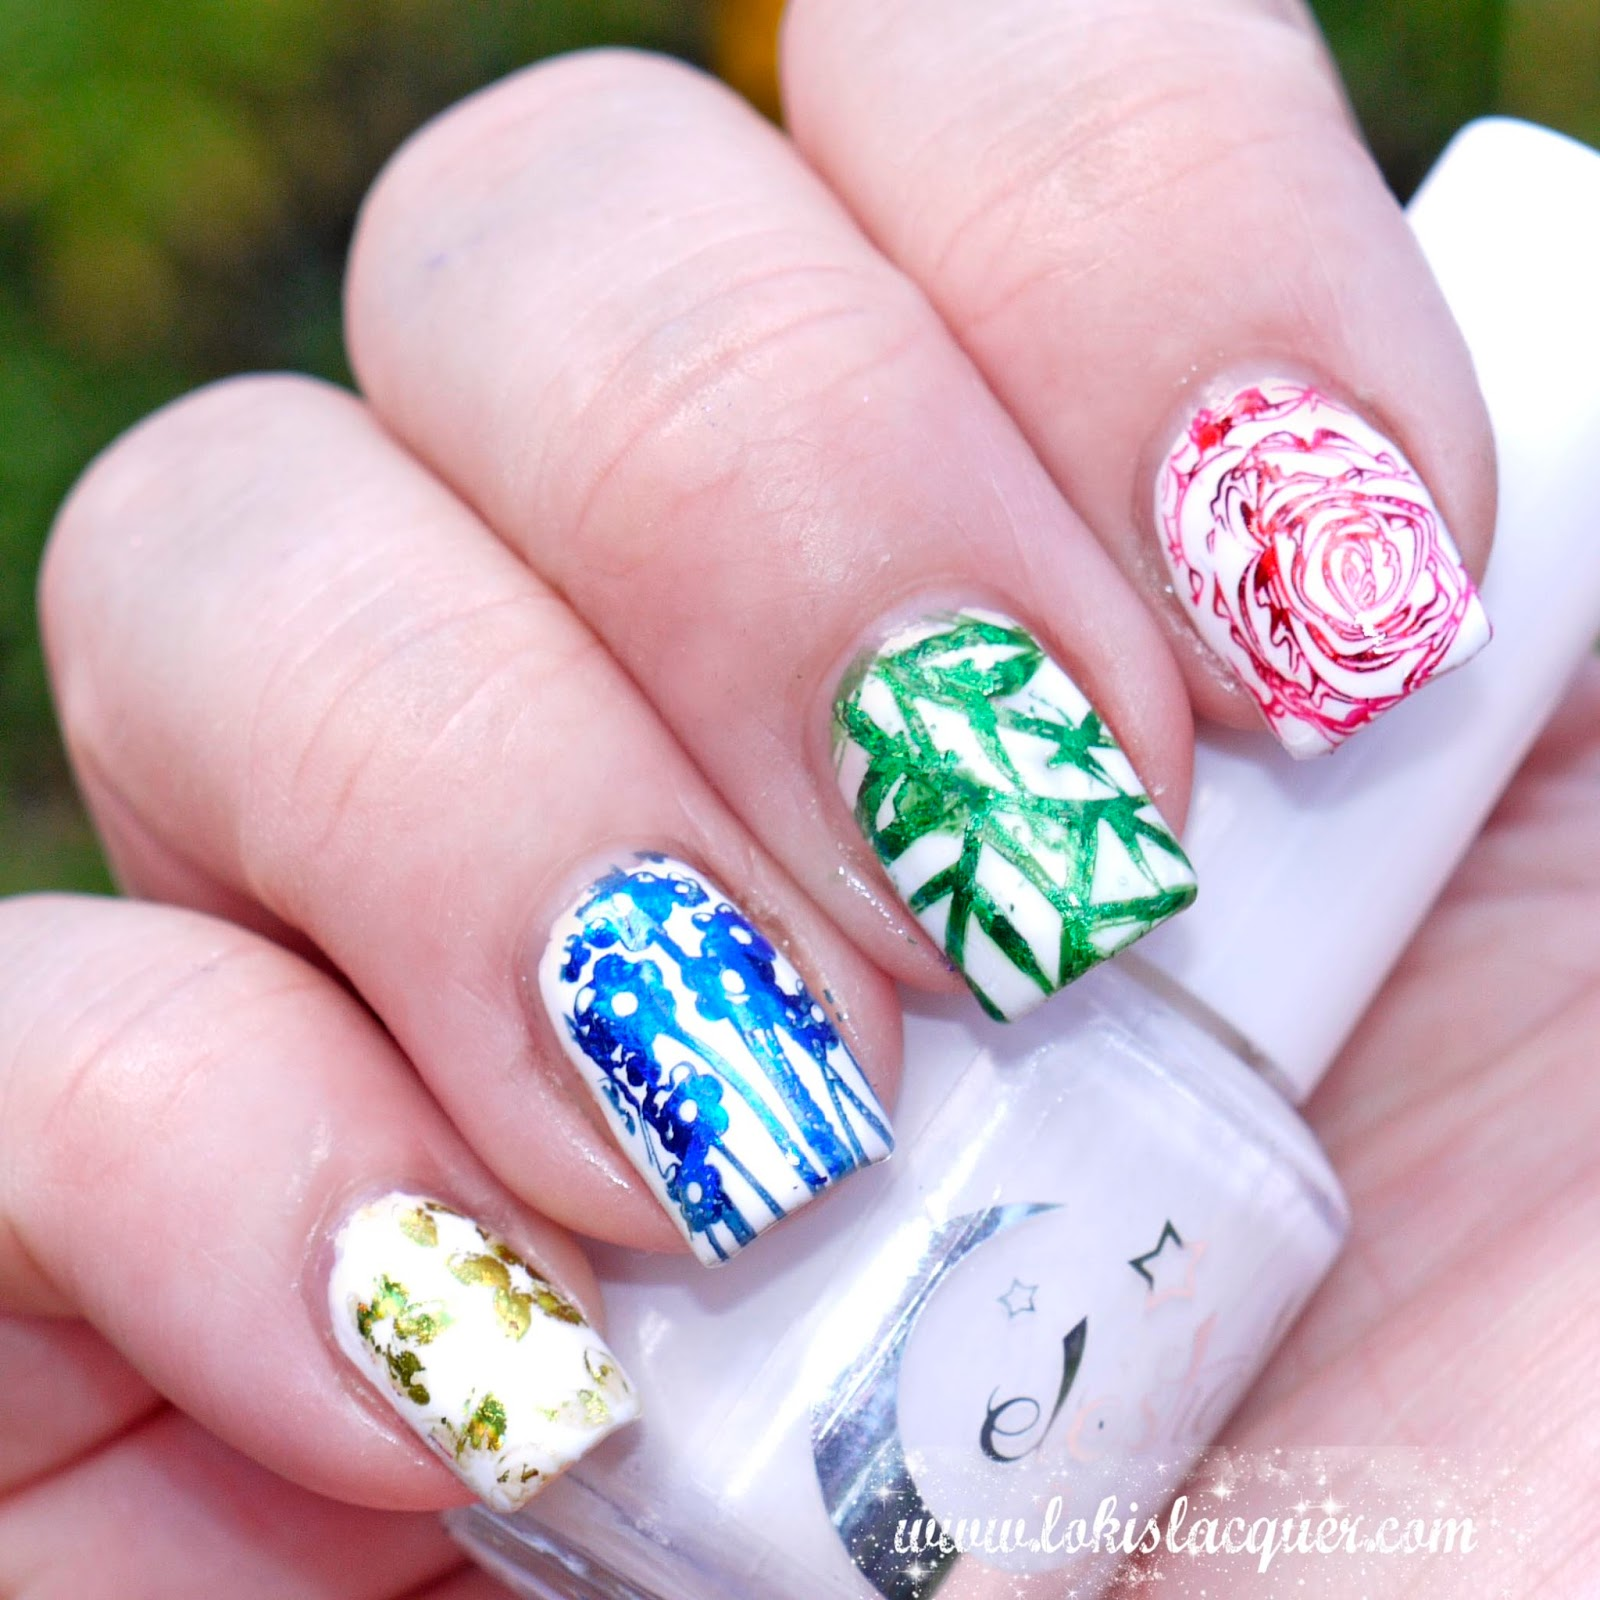 Using Nail Foils With Stamping